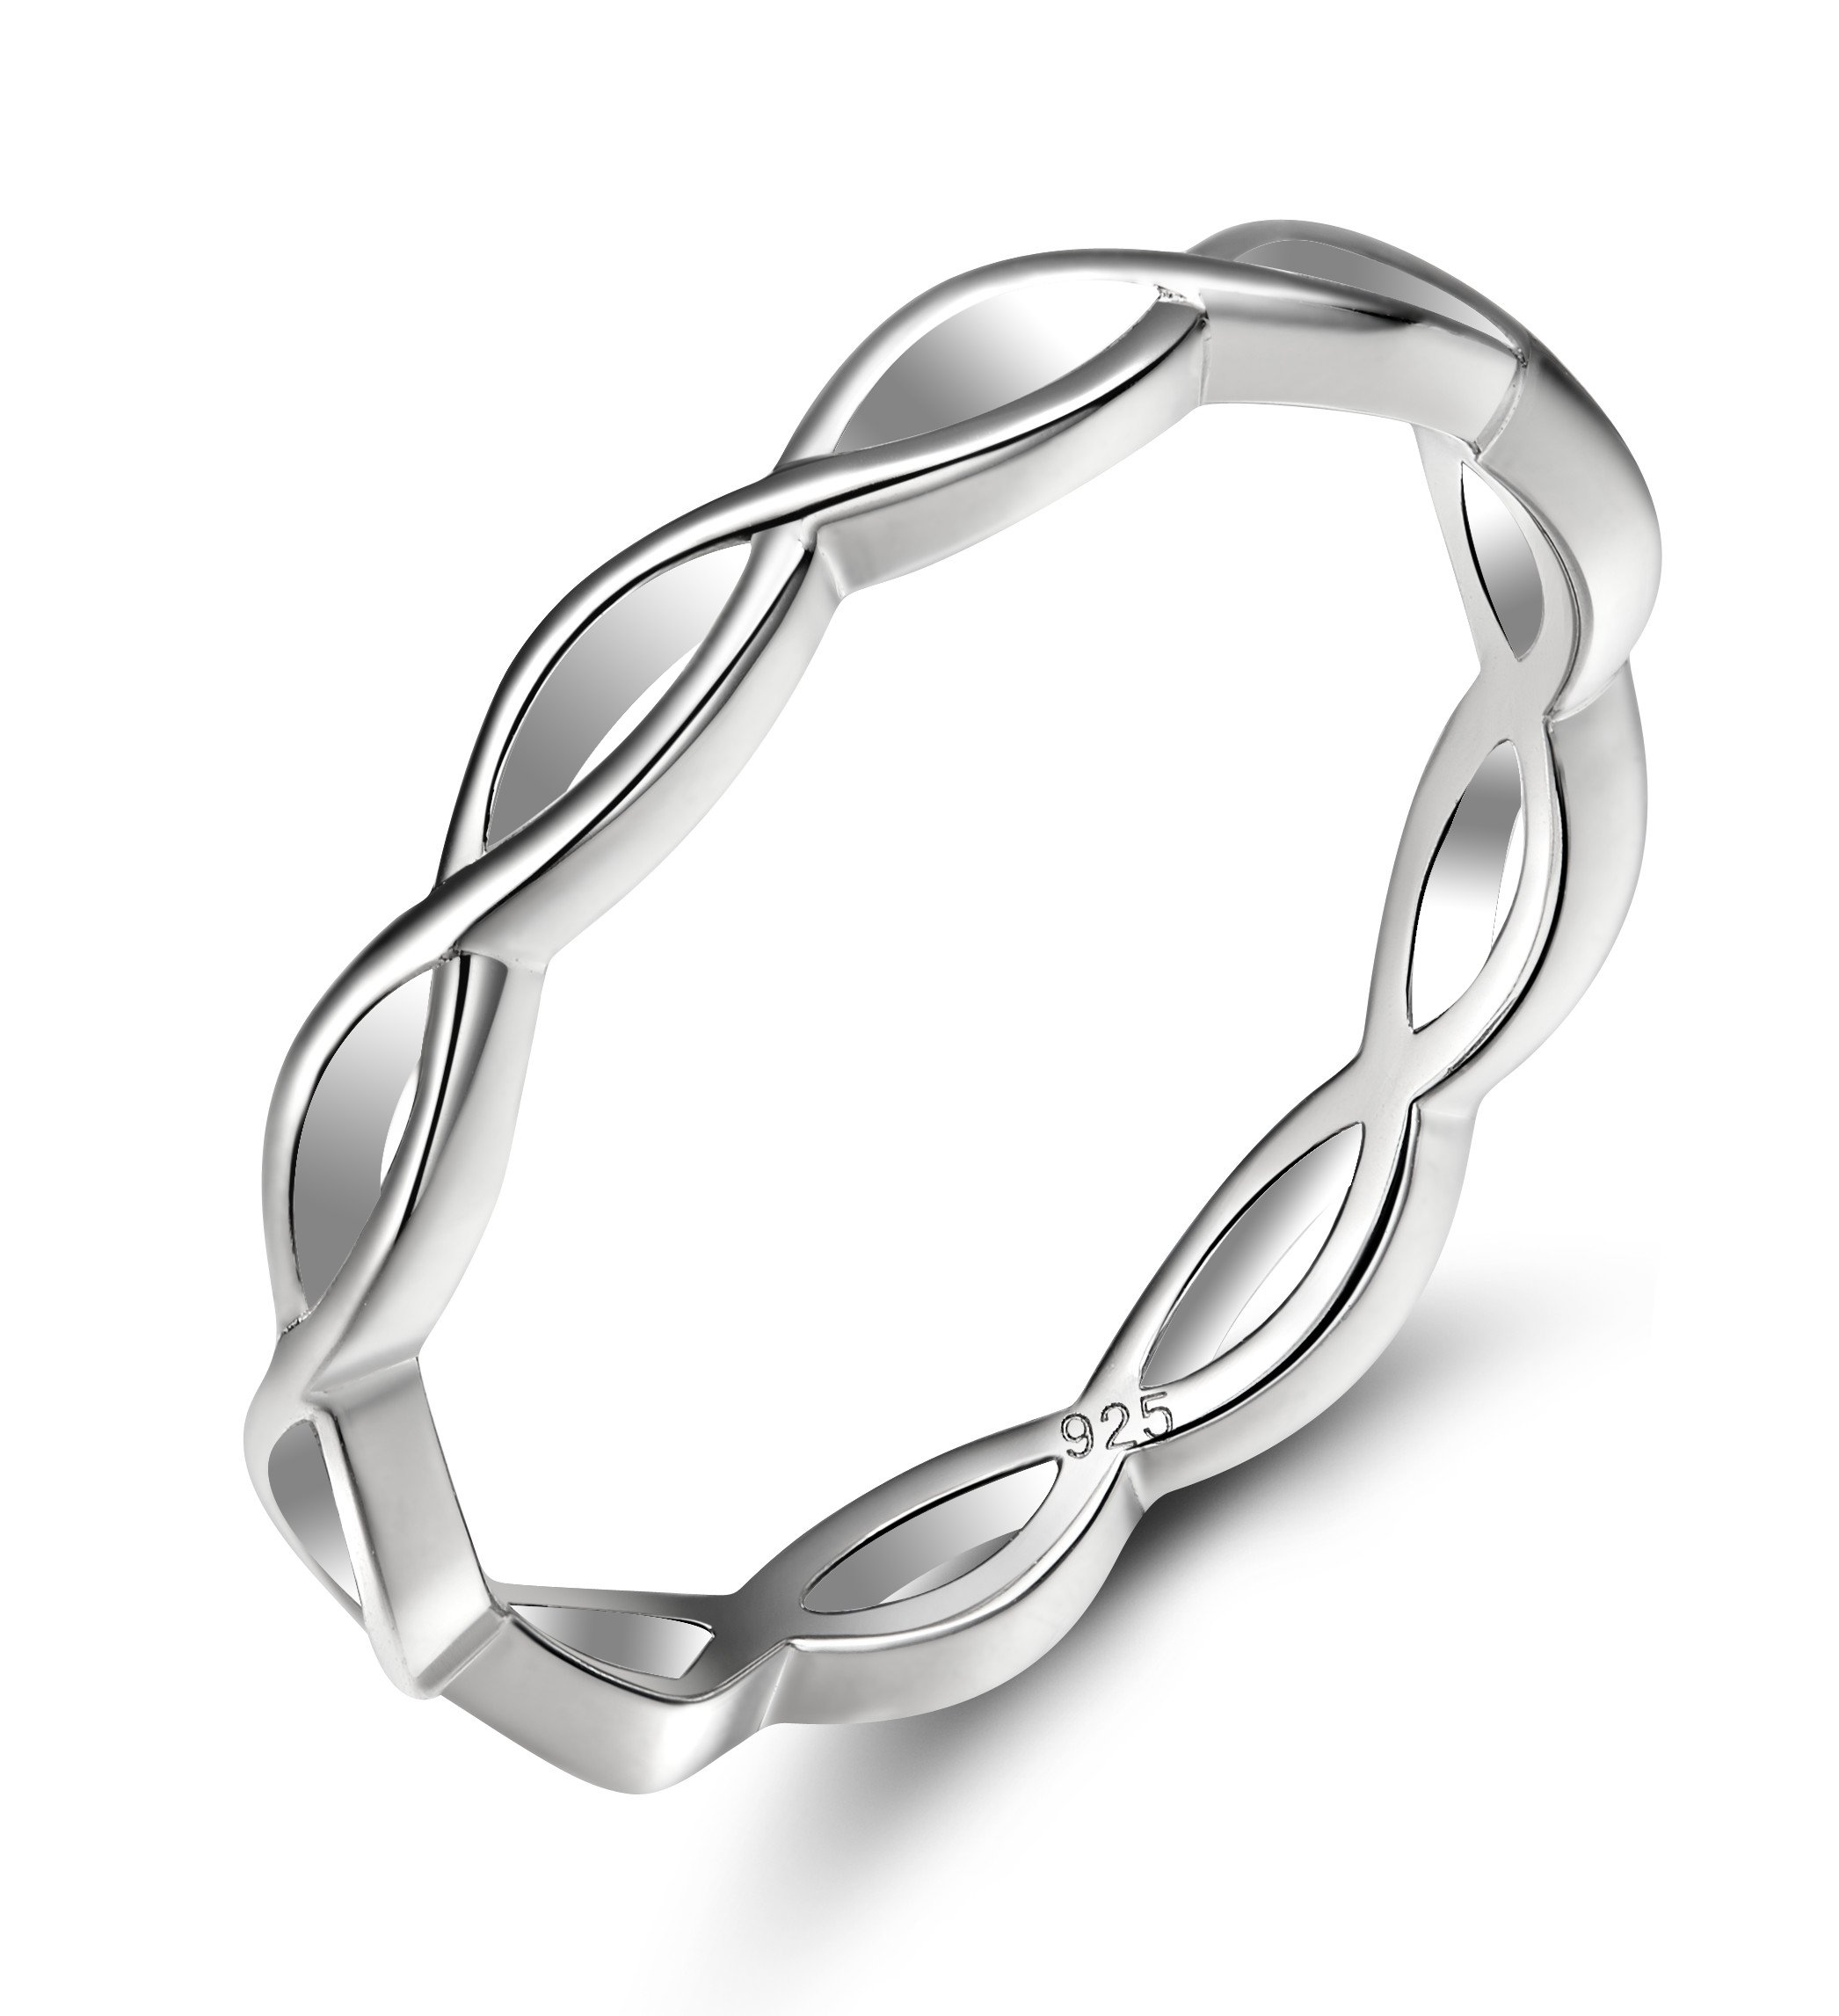 EAMTI 925 Sterling Silver Celtic Knot Ring Simple Criss Cross Infinity Wedding Band for Women Size 4-12